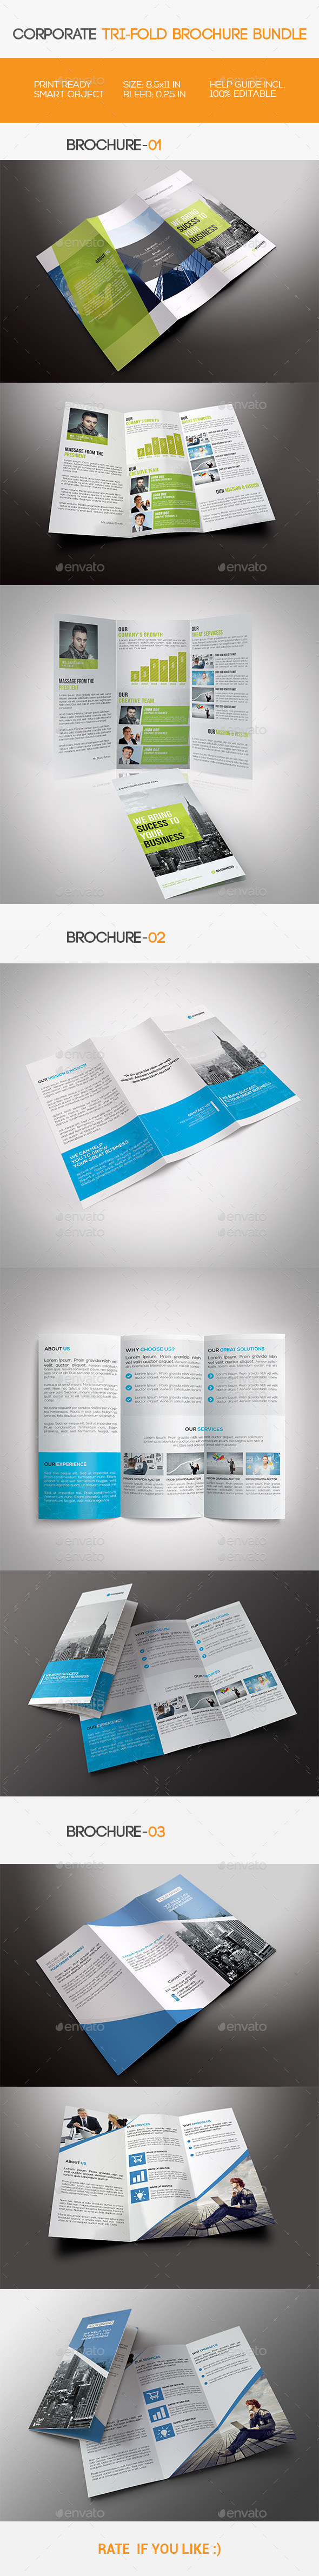 GraphicRiver Corporate Tri-fold Brochure Bundle 11515532